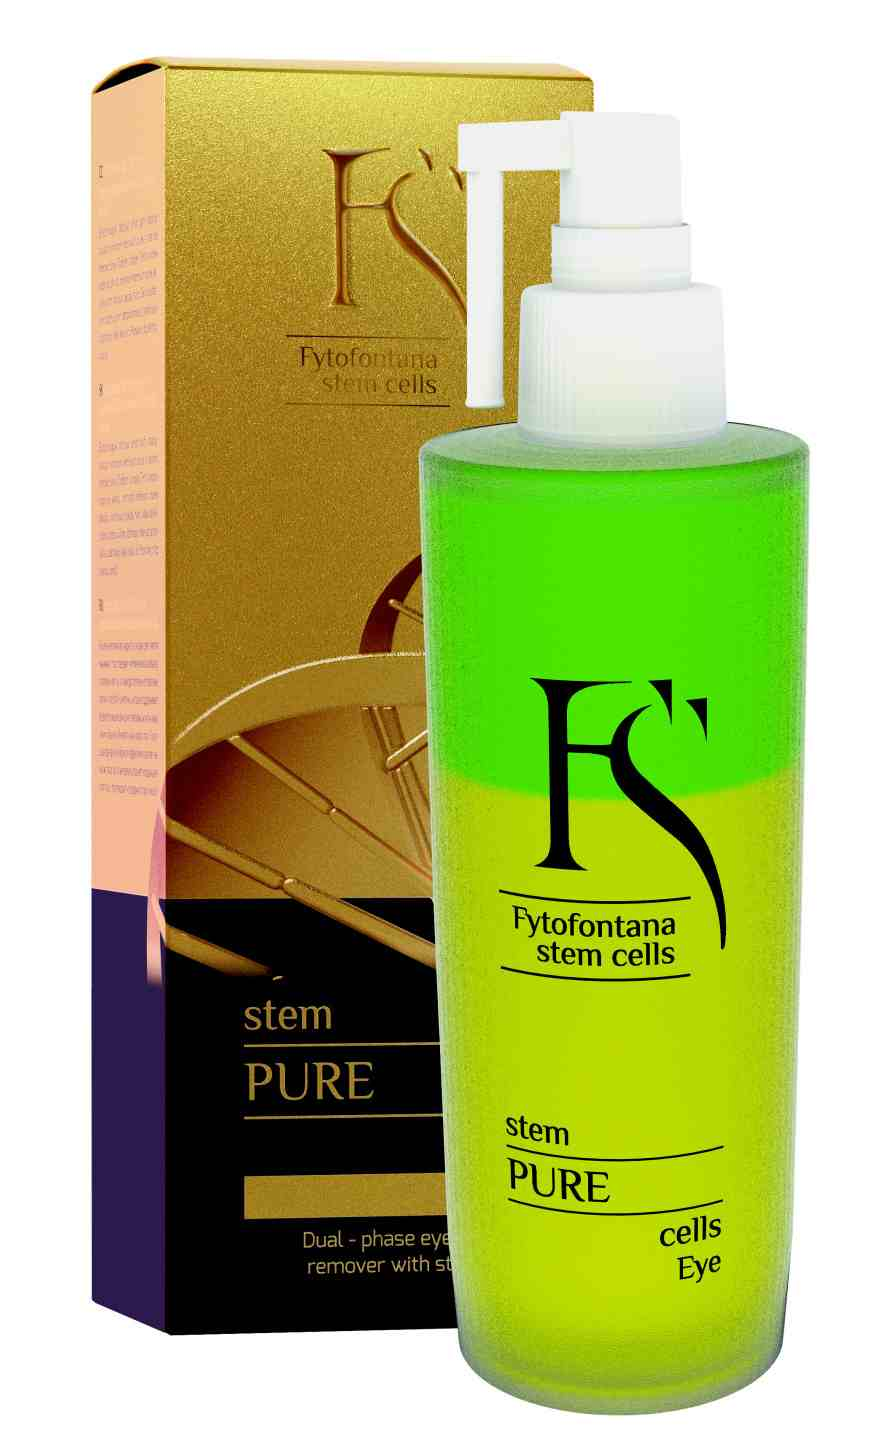 Herb Pharma Fytofontana Stem Cells Pure Eye 125 ml